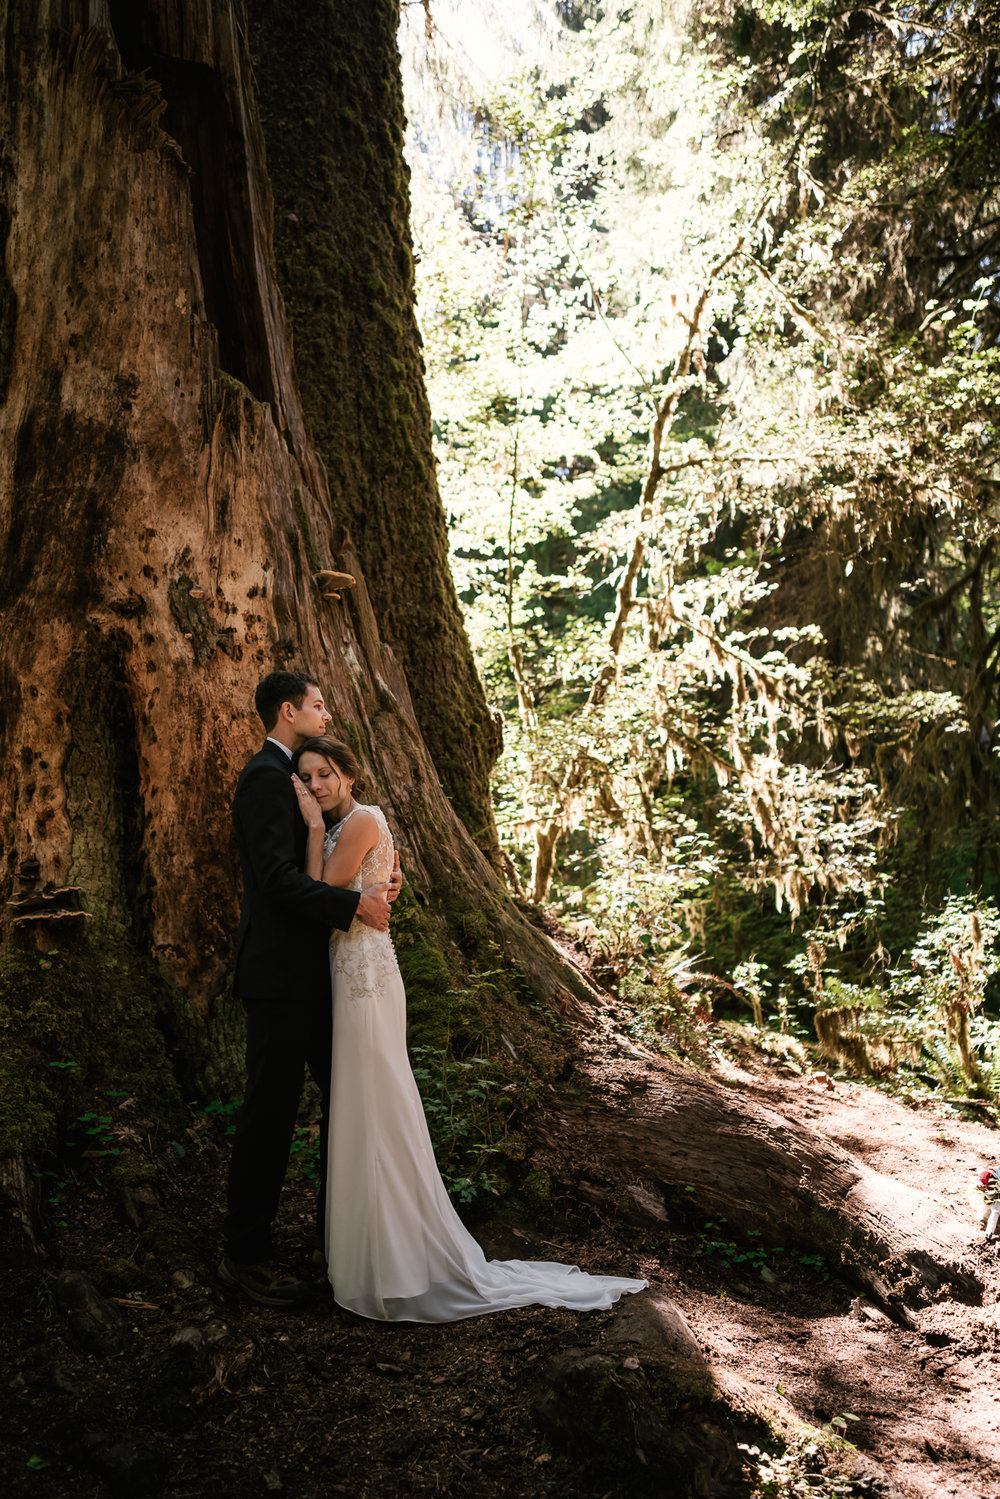 Couple holds each other tight in the shadow of a towering cedar tree in the Hoh Rainforest.